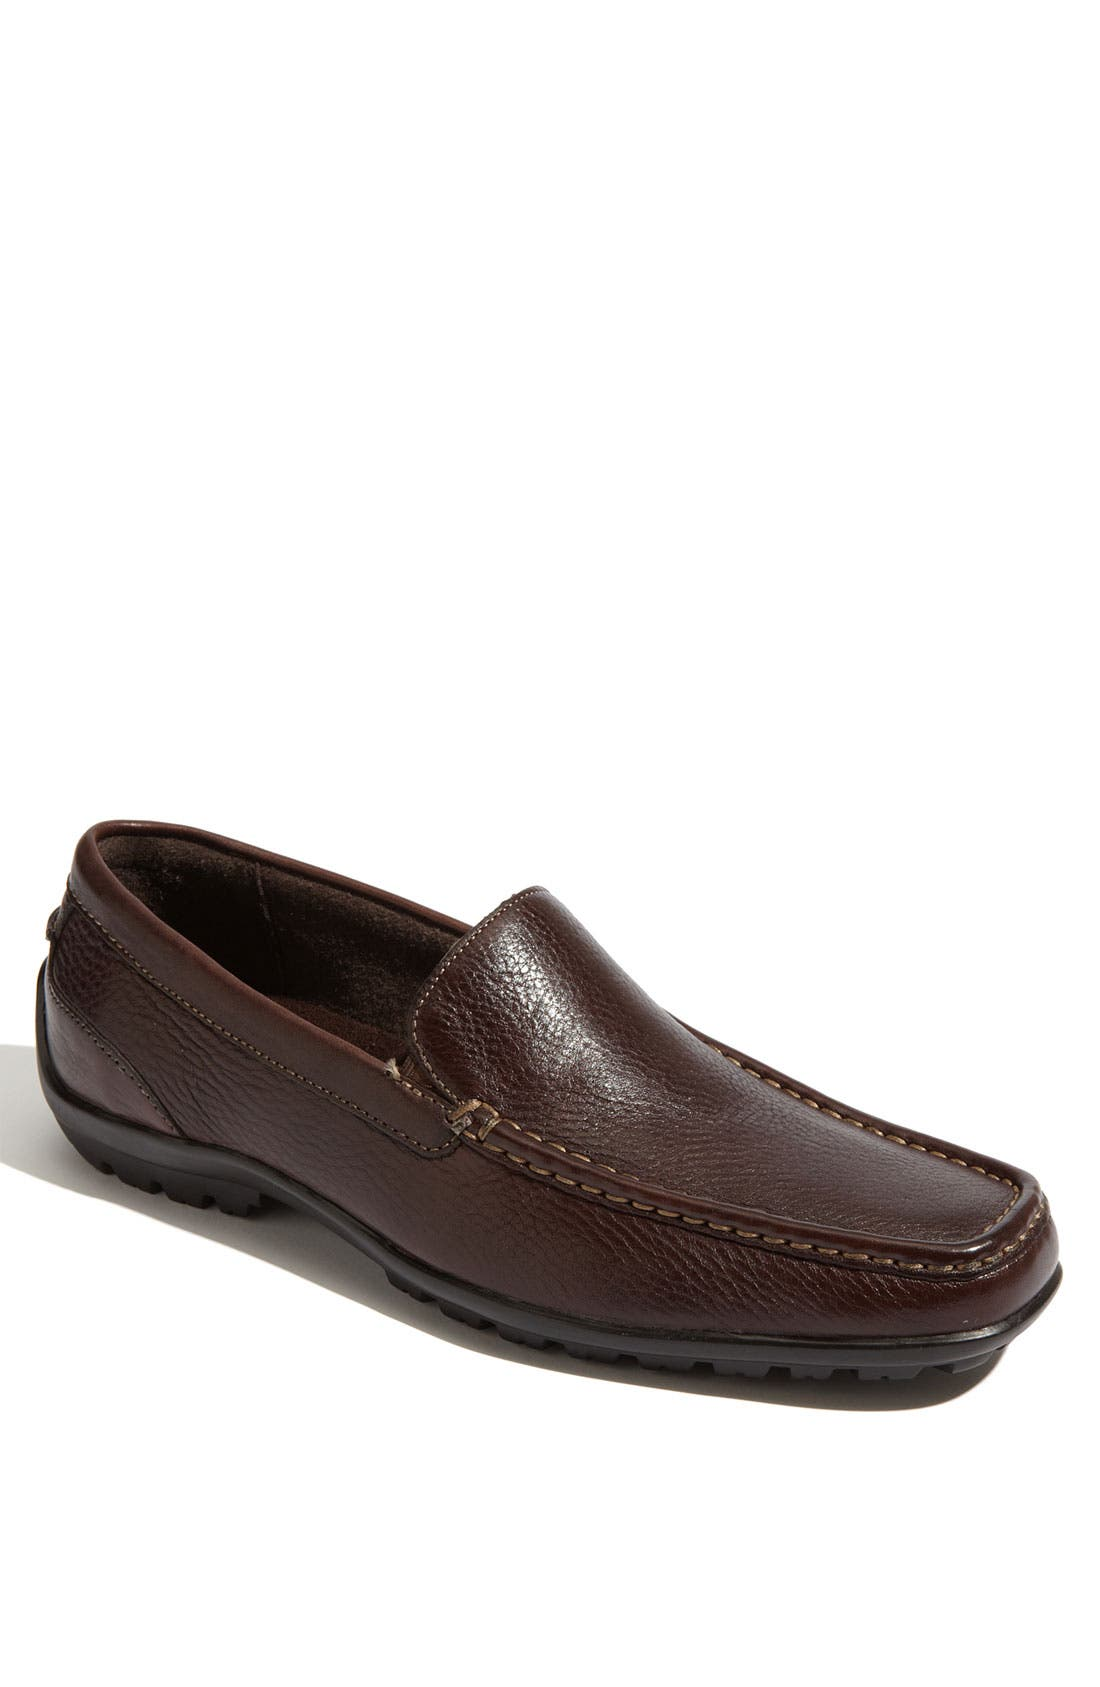 Alternate Image 1 Selected - Florsheim 'Nowles' Slip-On